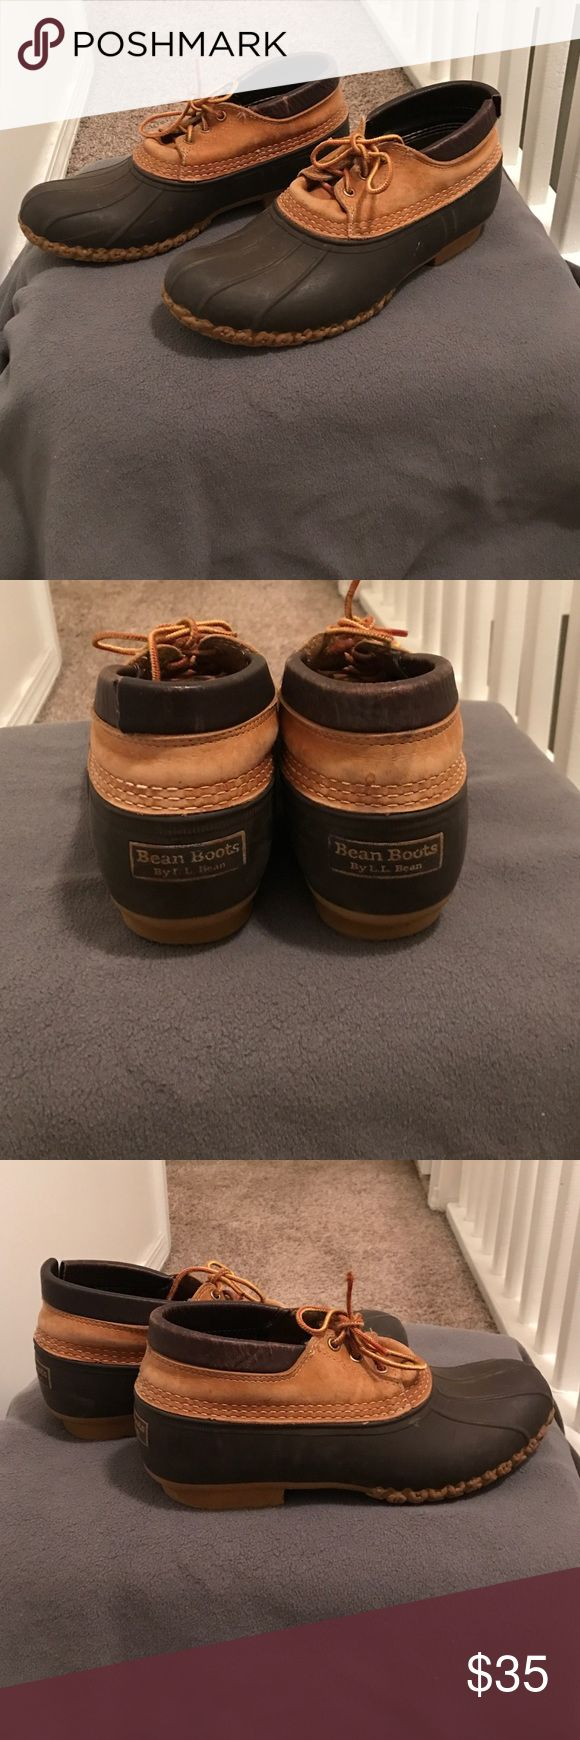 Men's L.L Bean Boots Men's size 10 low cut Bean Boots. They are use Boots with some scrapes and scratches. They look good still! L.L. Bean Shoes Boots